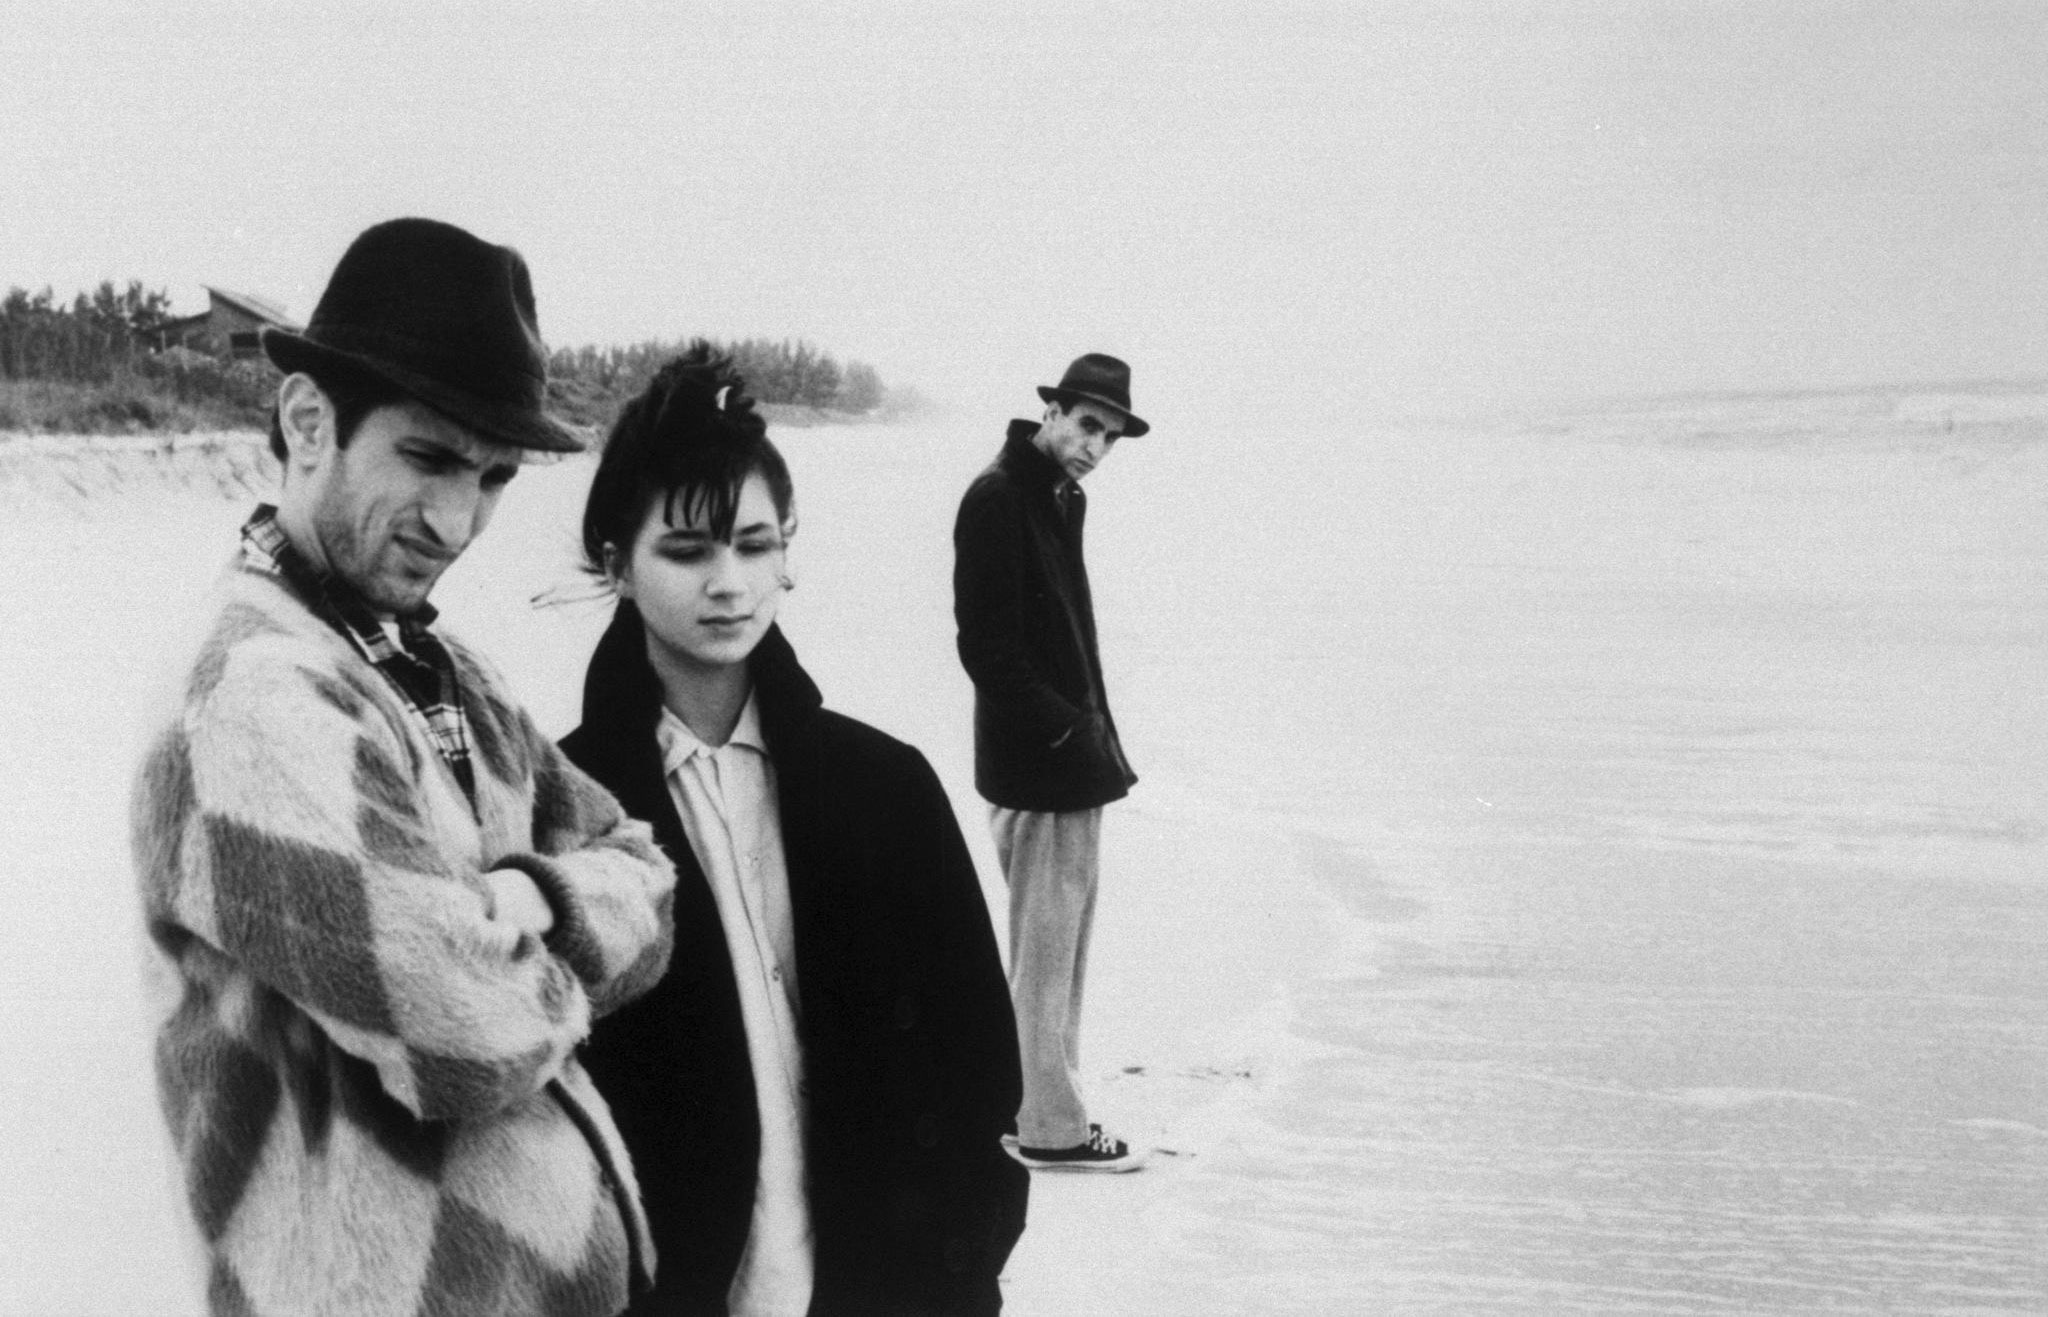 7 ART CINEMA | Stranger than Paradise - 1984 - Jim Jarmusch | John Lurie as Willie, Eszter Balint as Eva, Richard Edson as Eddie, Cecillia Stark as Aunt Lotte, Danny Rosen as Billy, Rammellzee as Man With Money, Tom DiCillo as Airline Agent, Richard Boes as Factory Worker, Rockets Redglare, Harvey Perr and Brian J. Burchill as Poker Players, Sara Driver as Girl With Hat, Paul Sloane as Motel Owner | Directed by Jim Jarmusch, Produced by Sara Driver, Written by Jim Jarmusch, Starring, John Lurie, Eszter Balint, Richard Edson, Cecillia Stark, Music by John Lurie, Cinematography Tom DiCillo, Edited by Jim Jarmusch, Melody London, Production company Cinesthesia Productions Inc., Distributed by The Samuel Goldwyn Company, Release dates 1984, Running time 89 minutes, Country United States, West Germany, Language English, Hungarian | Informations, Cast, Video, Dvd Covers, Film Posters, Photographs